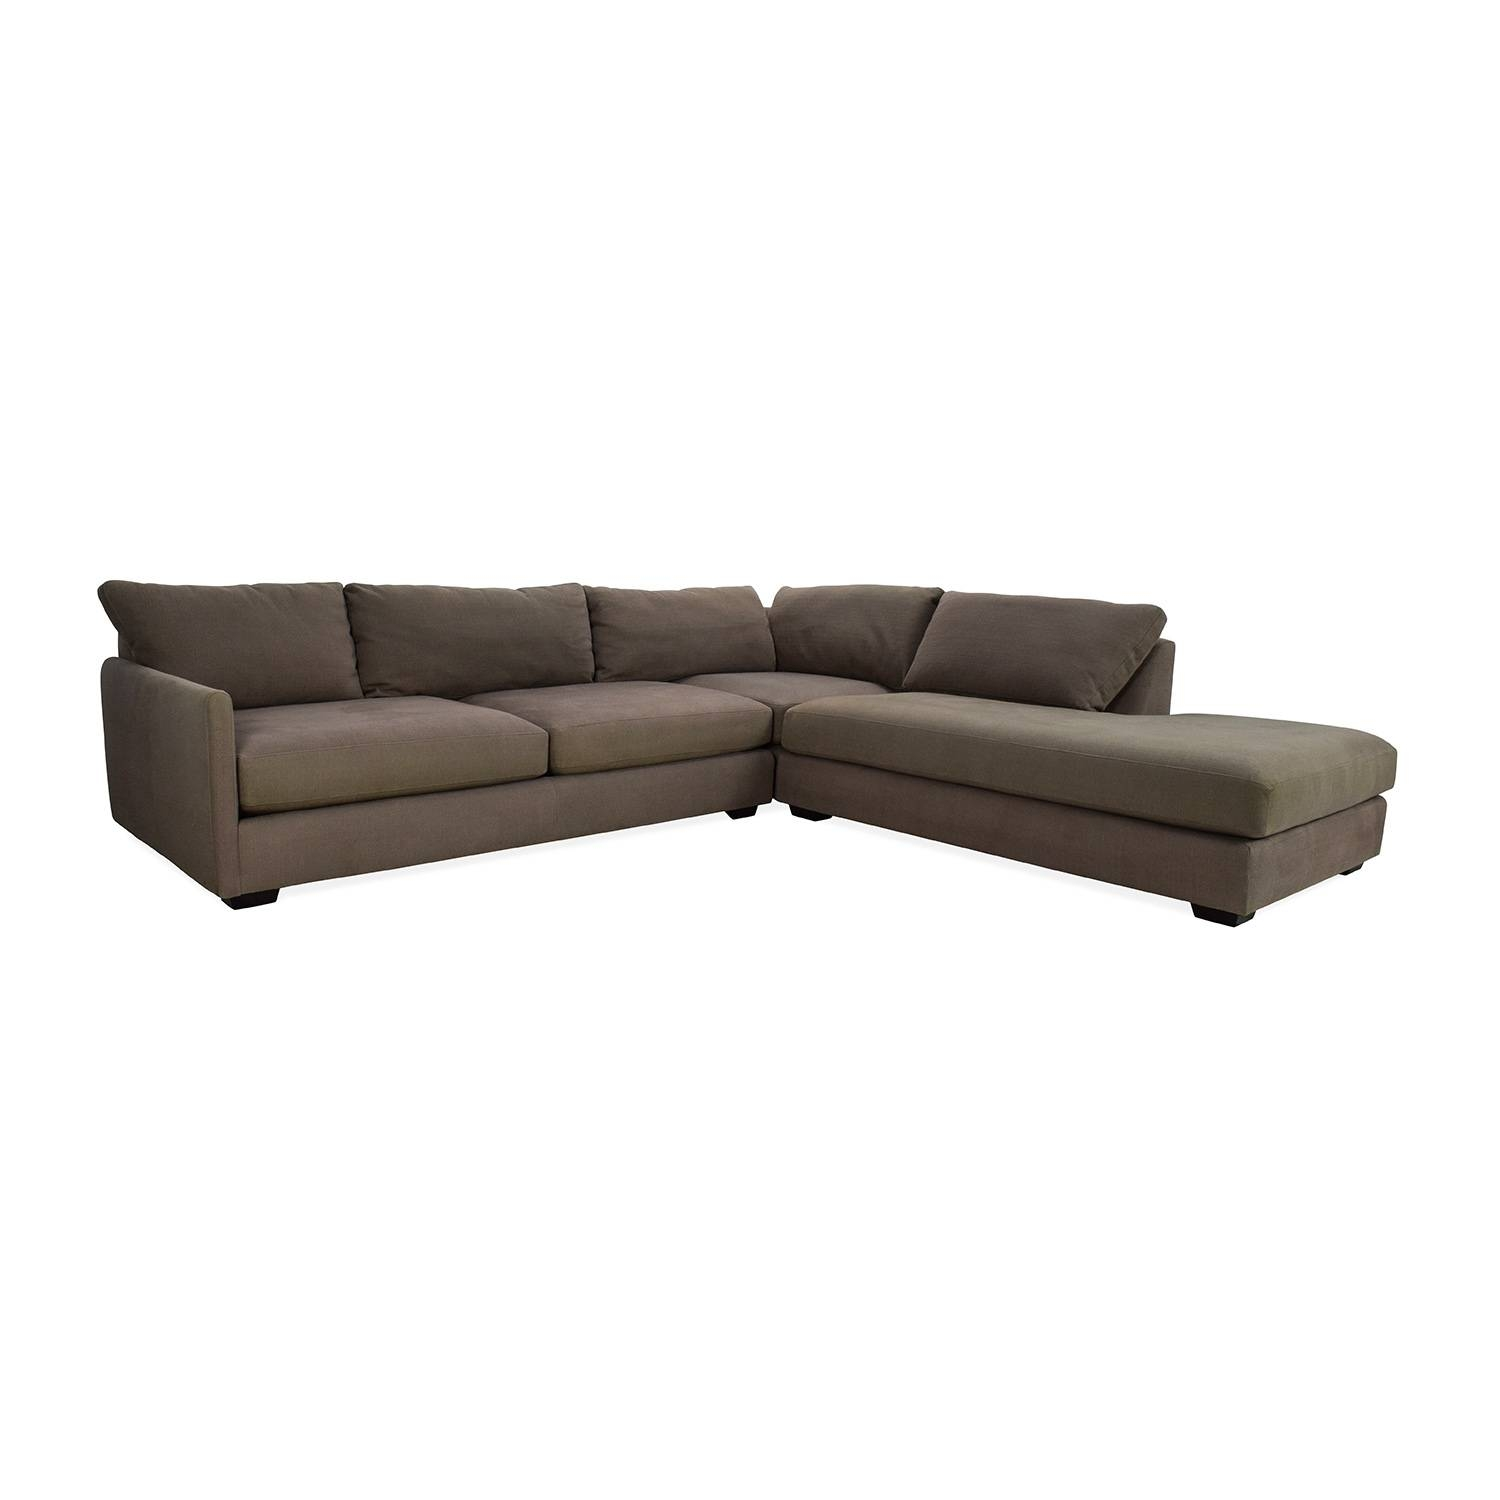 30 Best Collection of Crate and Barrel Sectional Sofas